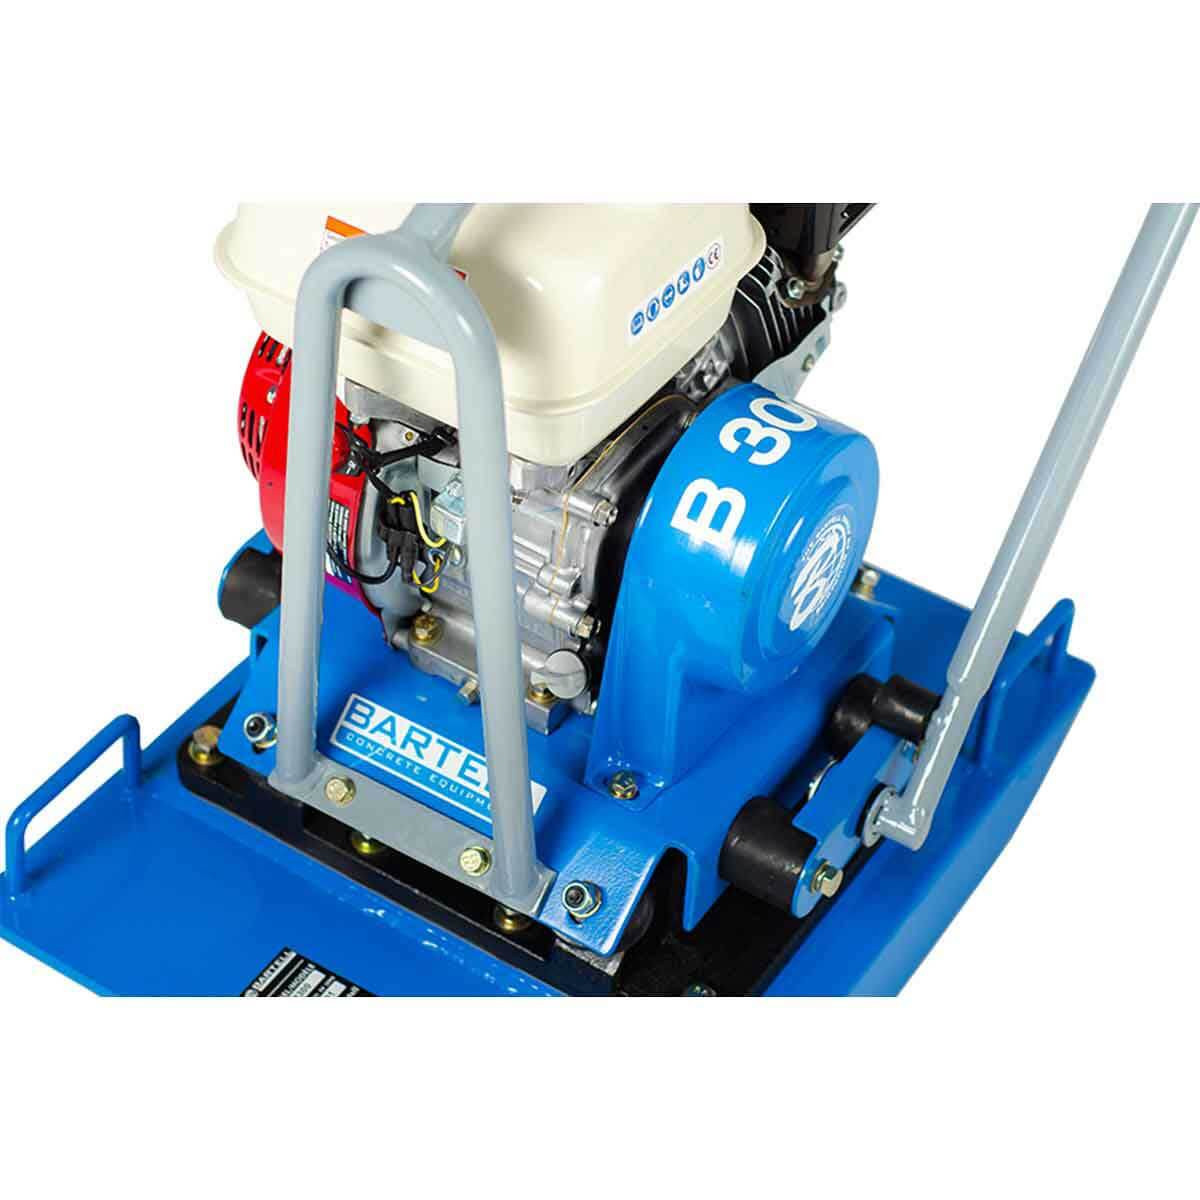 B300 Bartell Plate Compactor